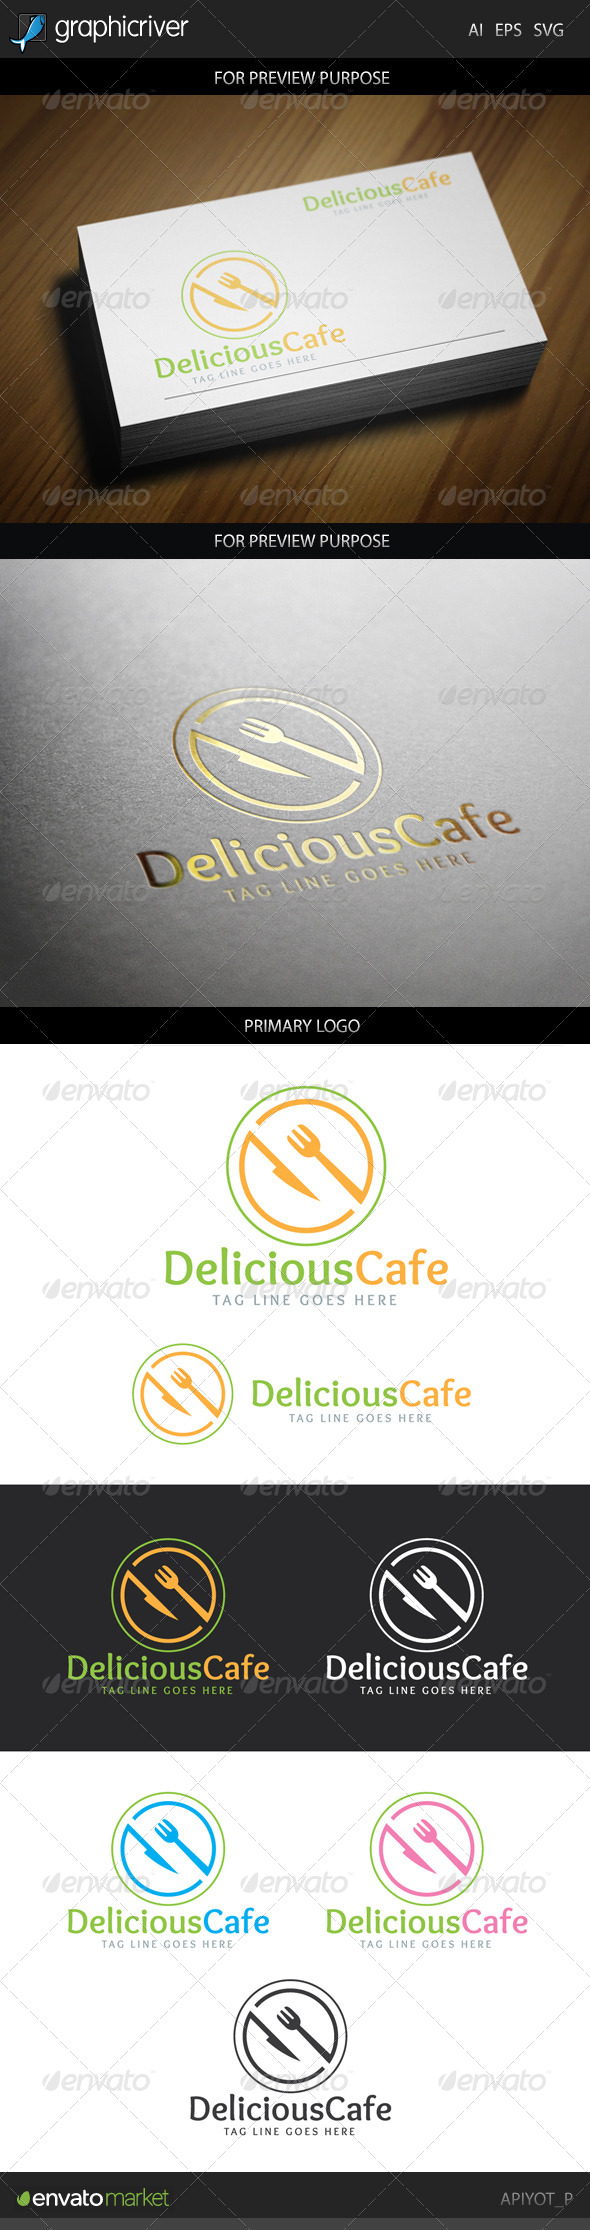 GraphicRiver Delicious Cafe Logo 8777710